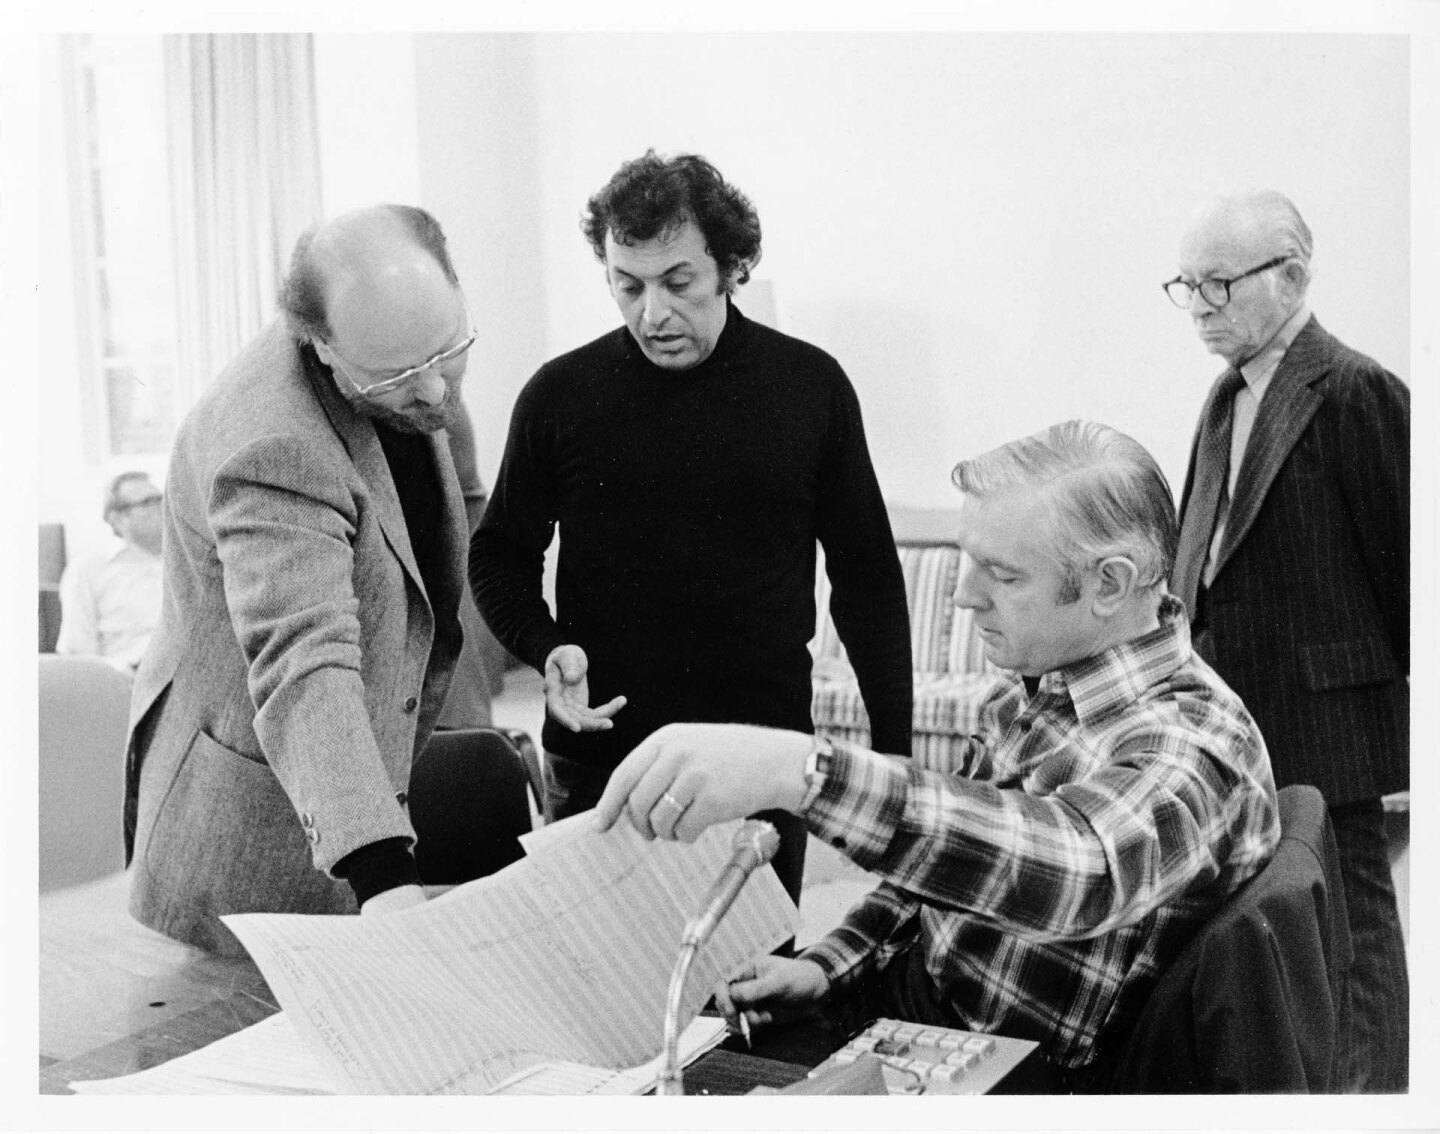 Star Wars recording session at UCLA Royce Hall, in the studio with John Williams and Zubin Mehta, in December 1977. | Courtesy of the Los Angeles Philharmonic Archives